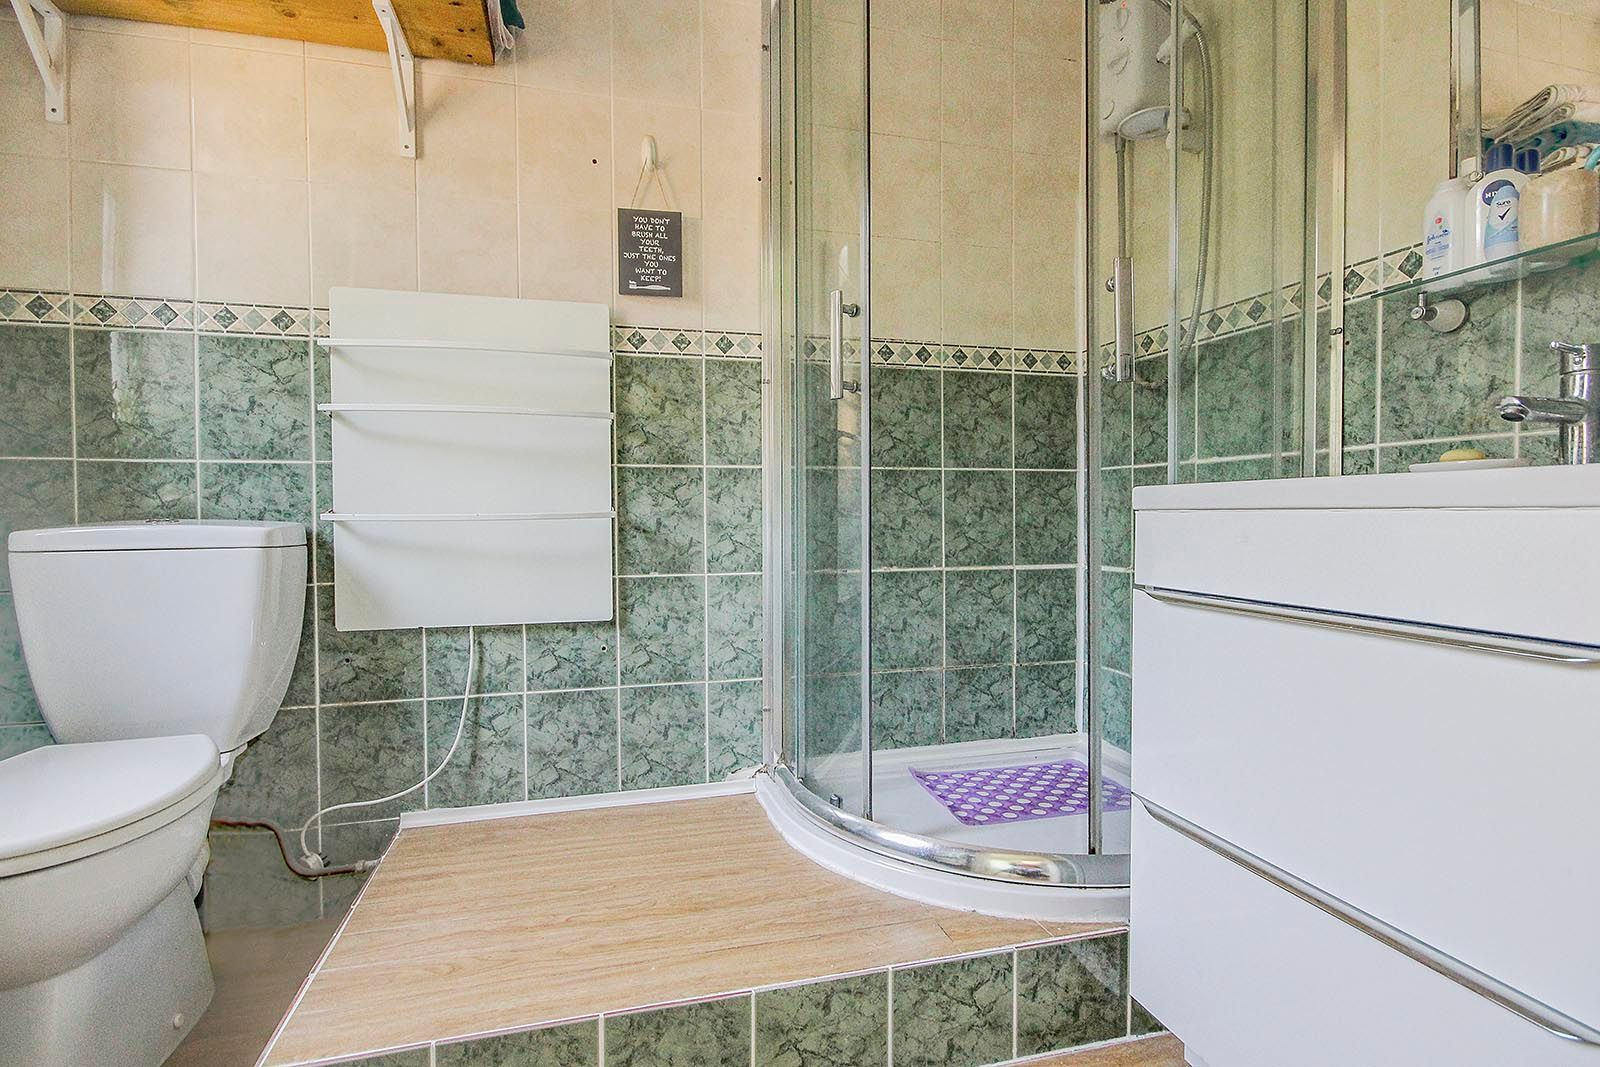 3 bed house for sale in Clapham Common  - Property Image 17